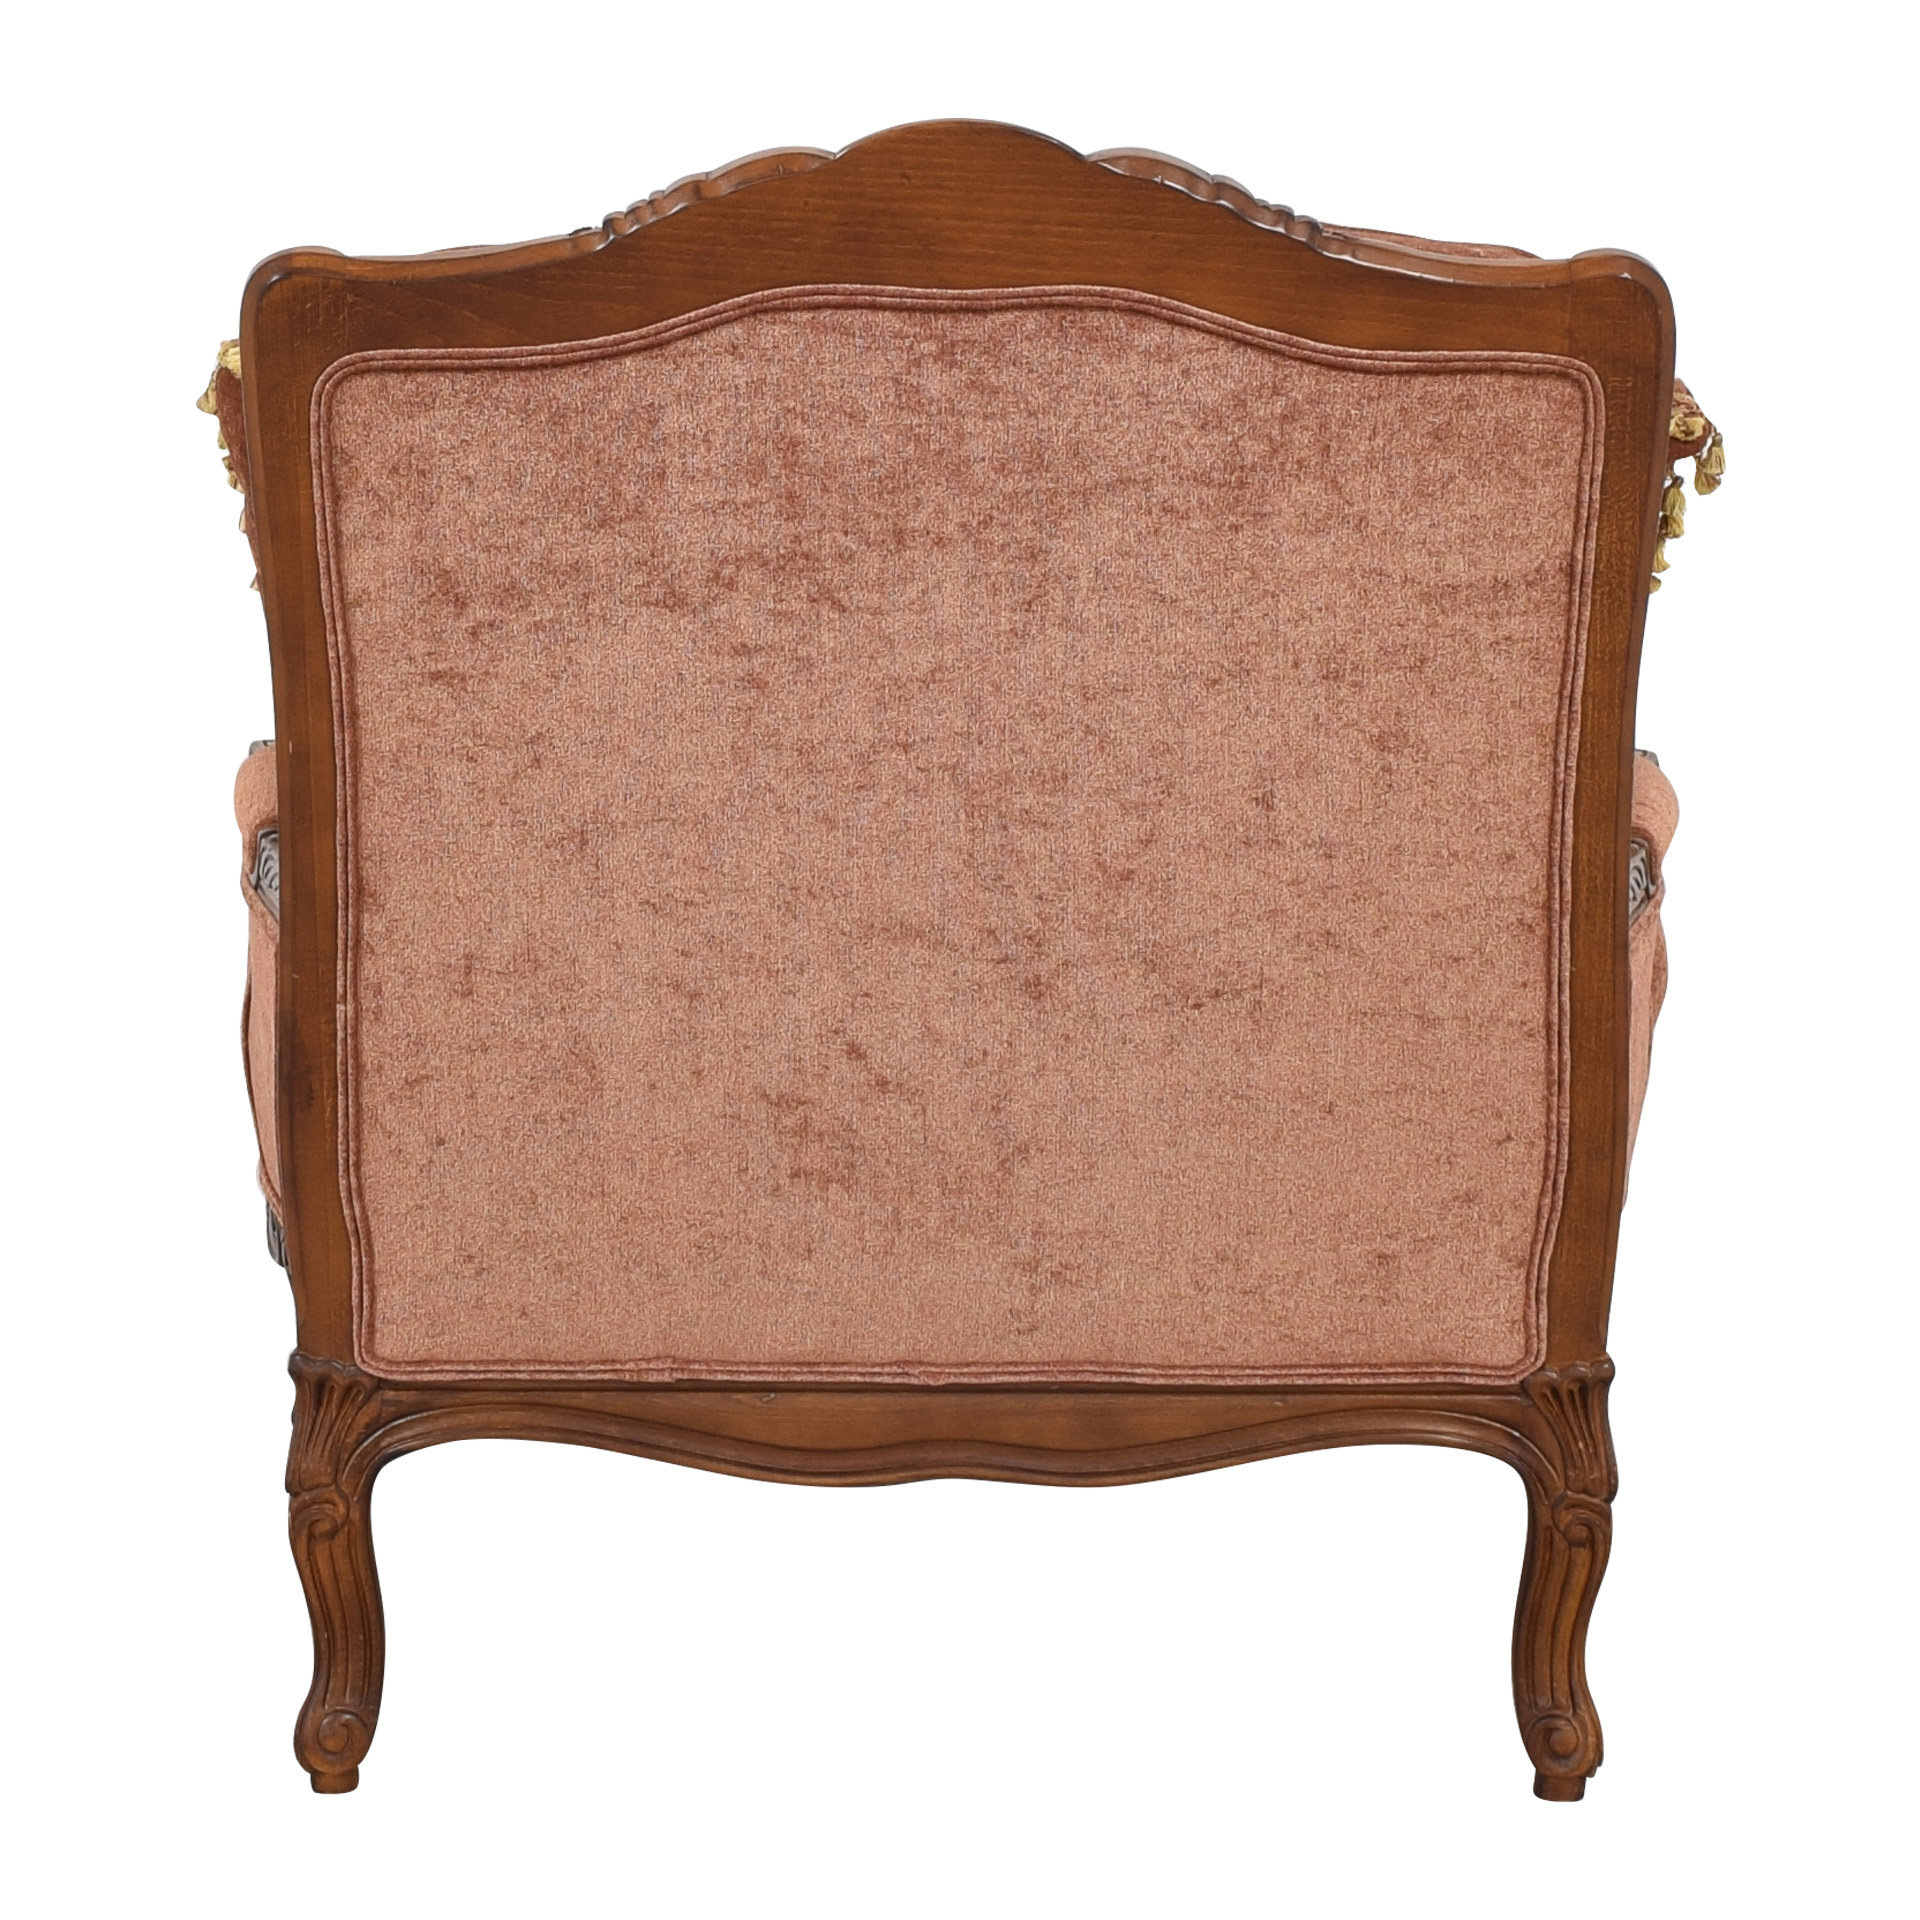 buy Zacksons Fine Furniture Zaksons Carved Lounge Chair online